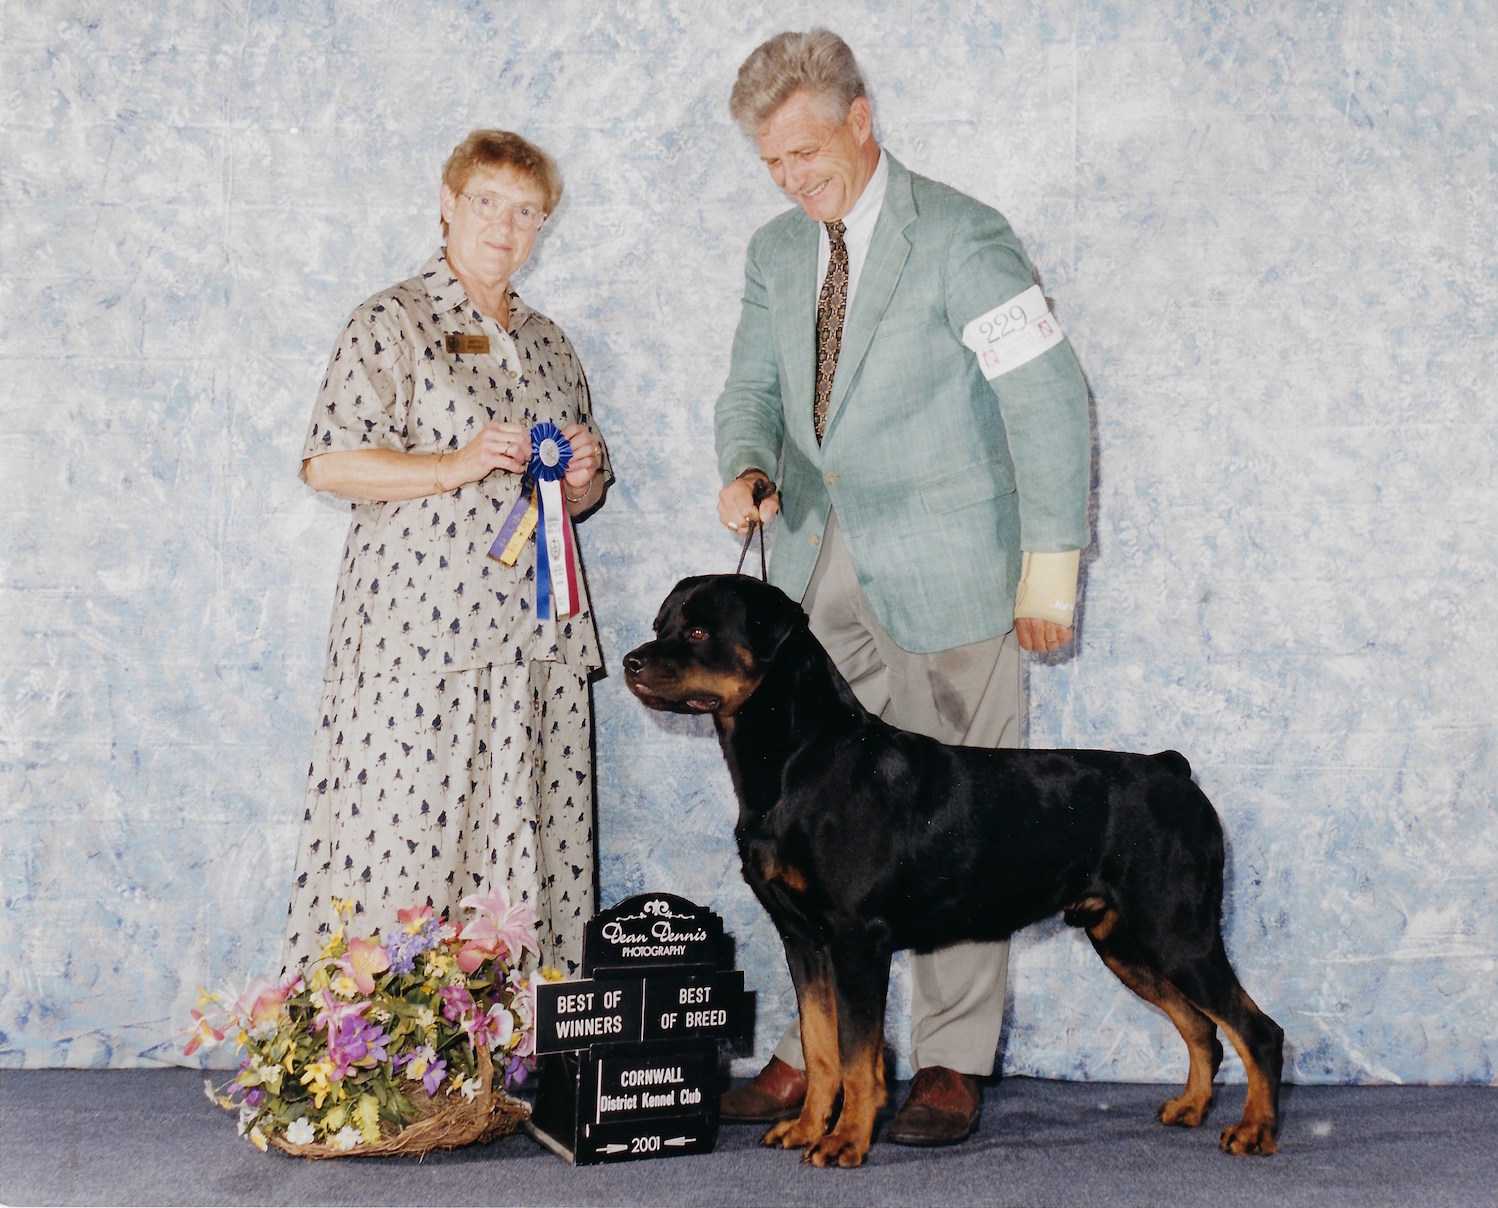 Marcus, Best of Winners, Best of Breed, Cornwall District Kennel Club, 2001, Dean Dennis Photography